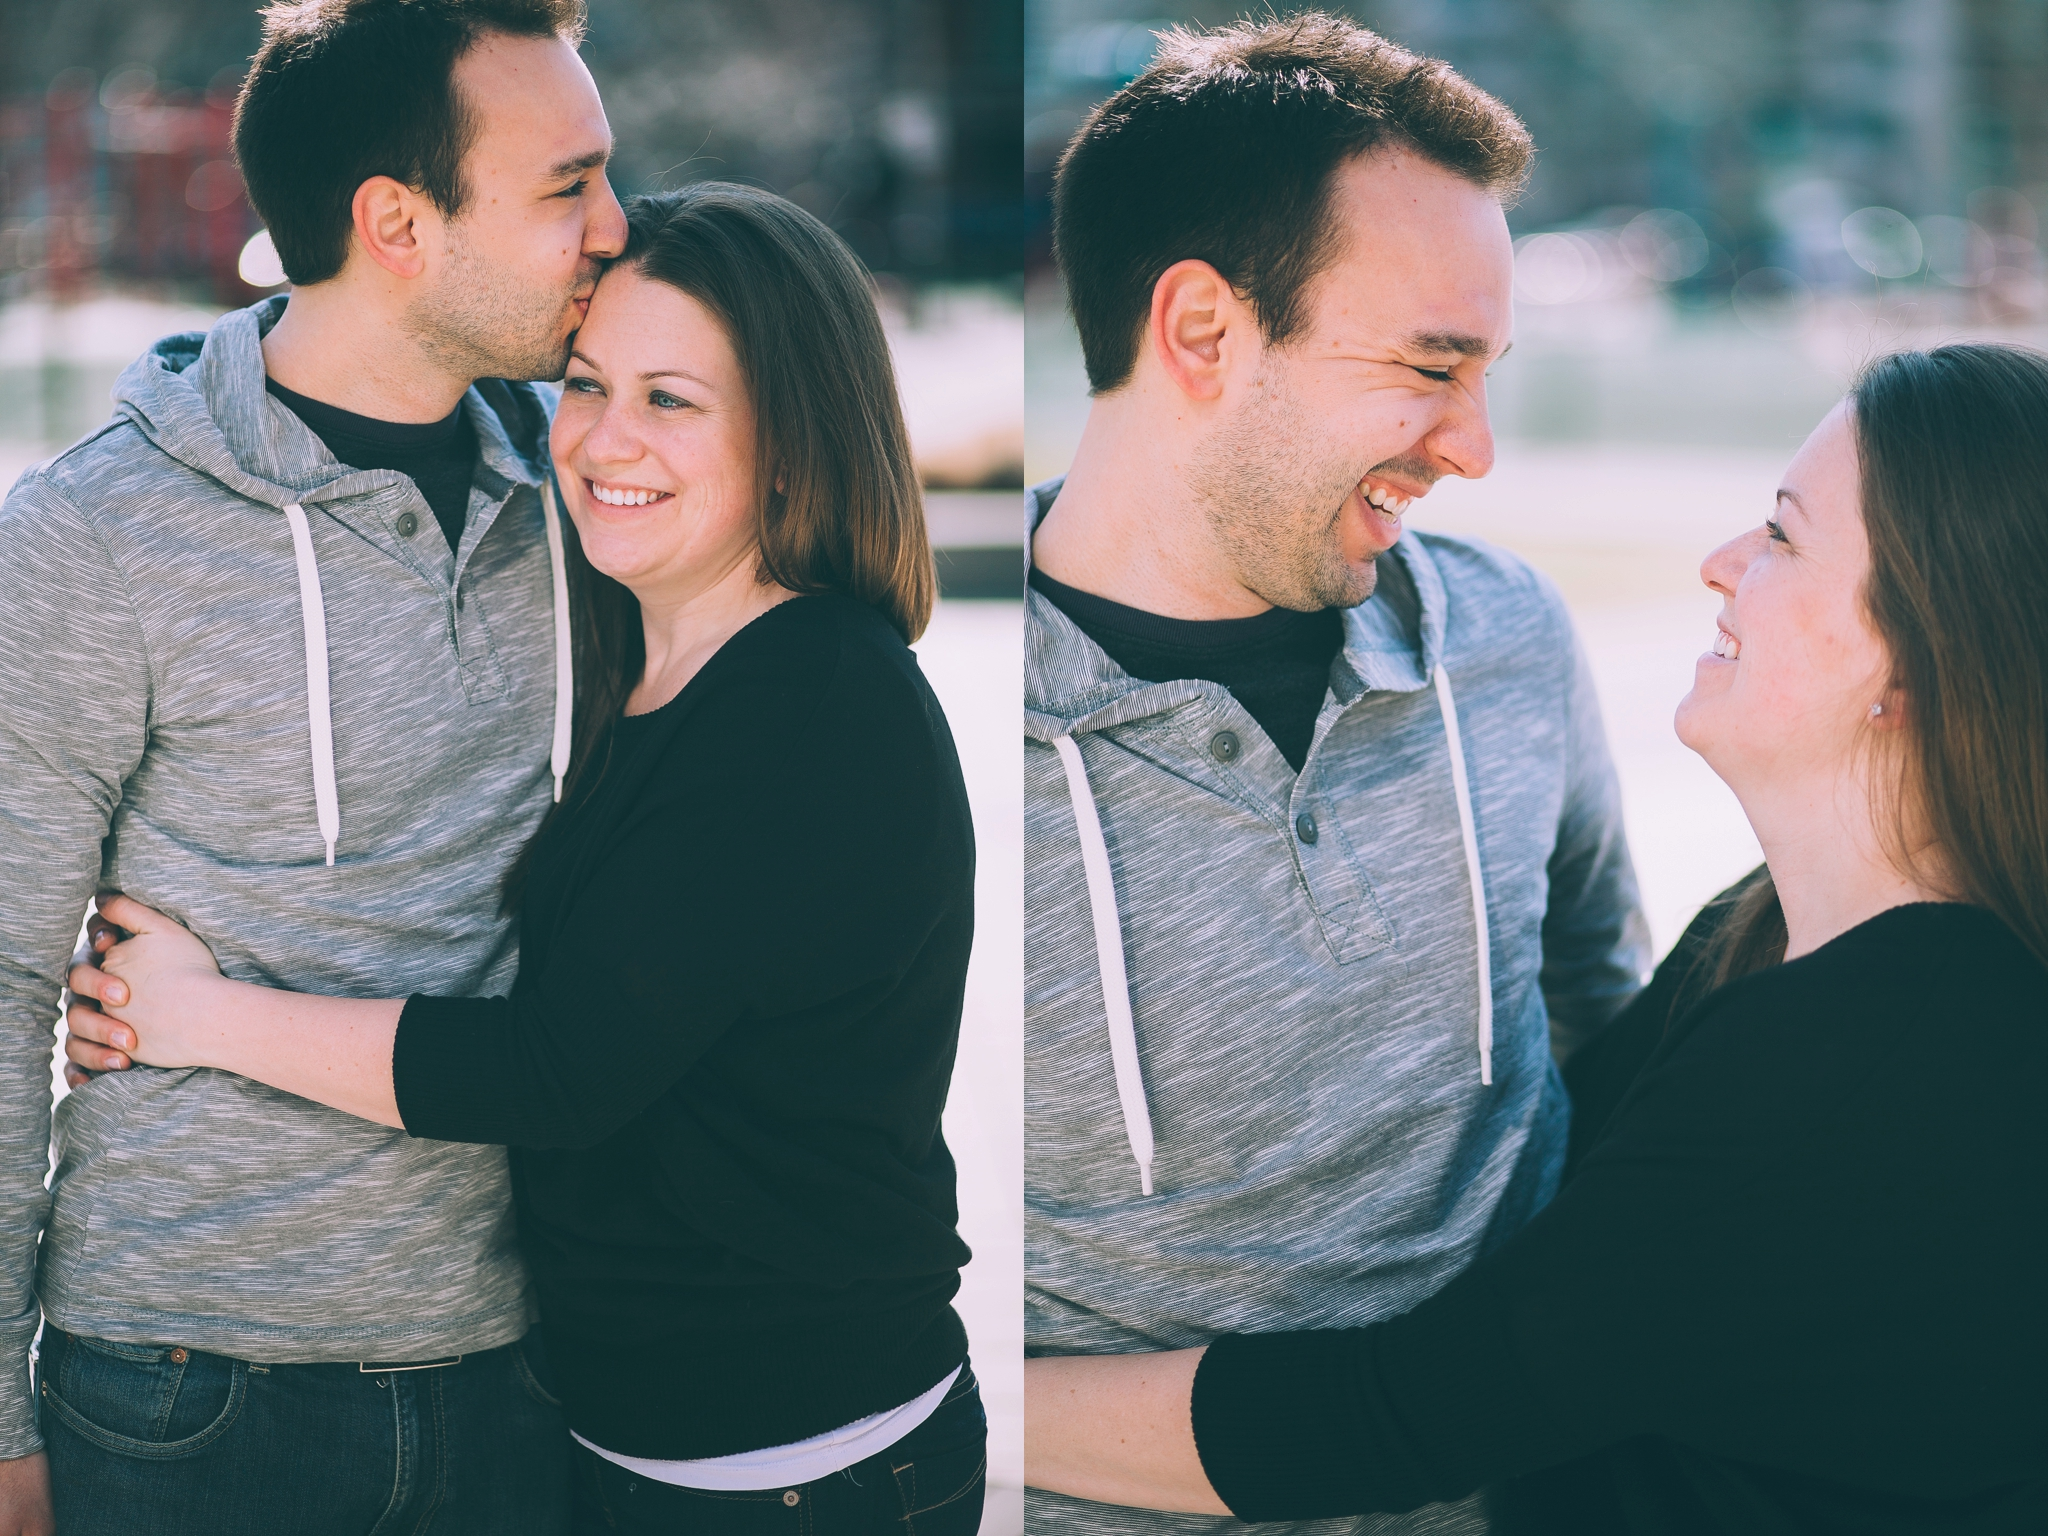 West-Loop-Engagment-Photography-017.JPG